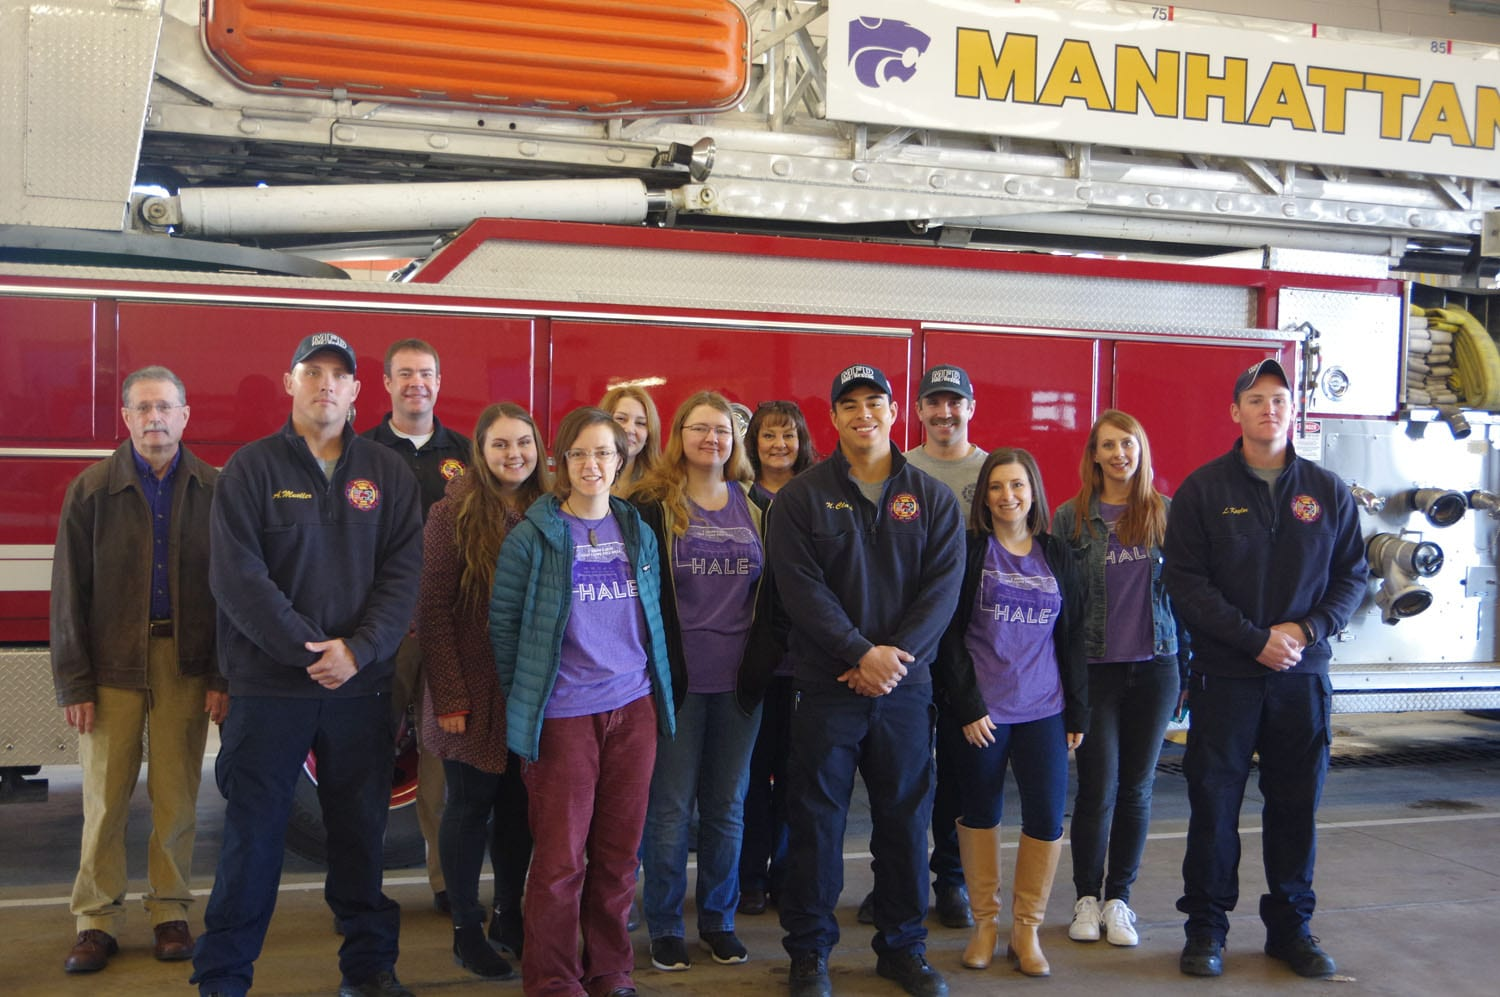 Librarians and firefighters gather for a photo in front of a firetruck.